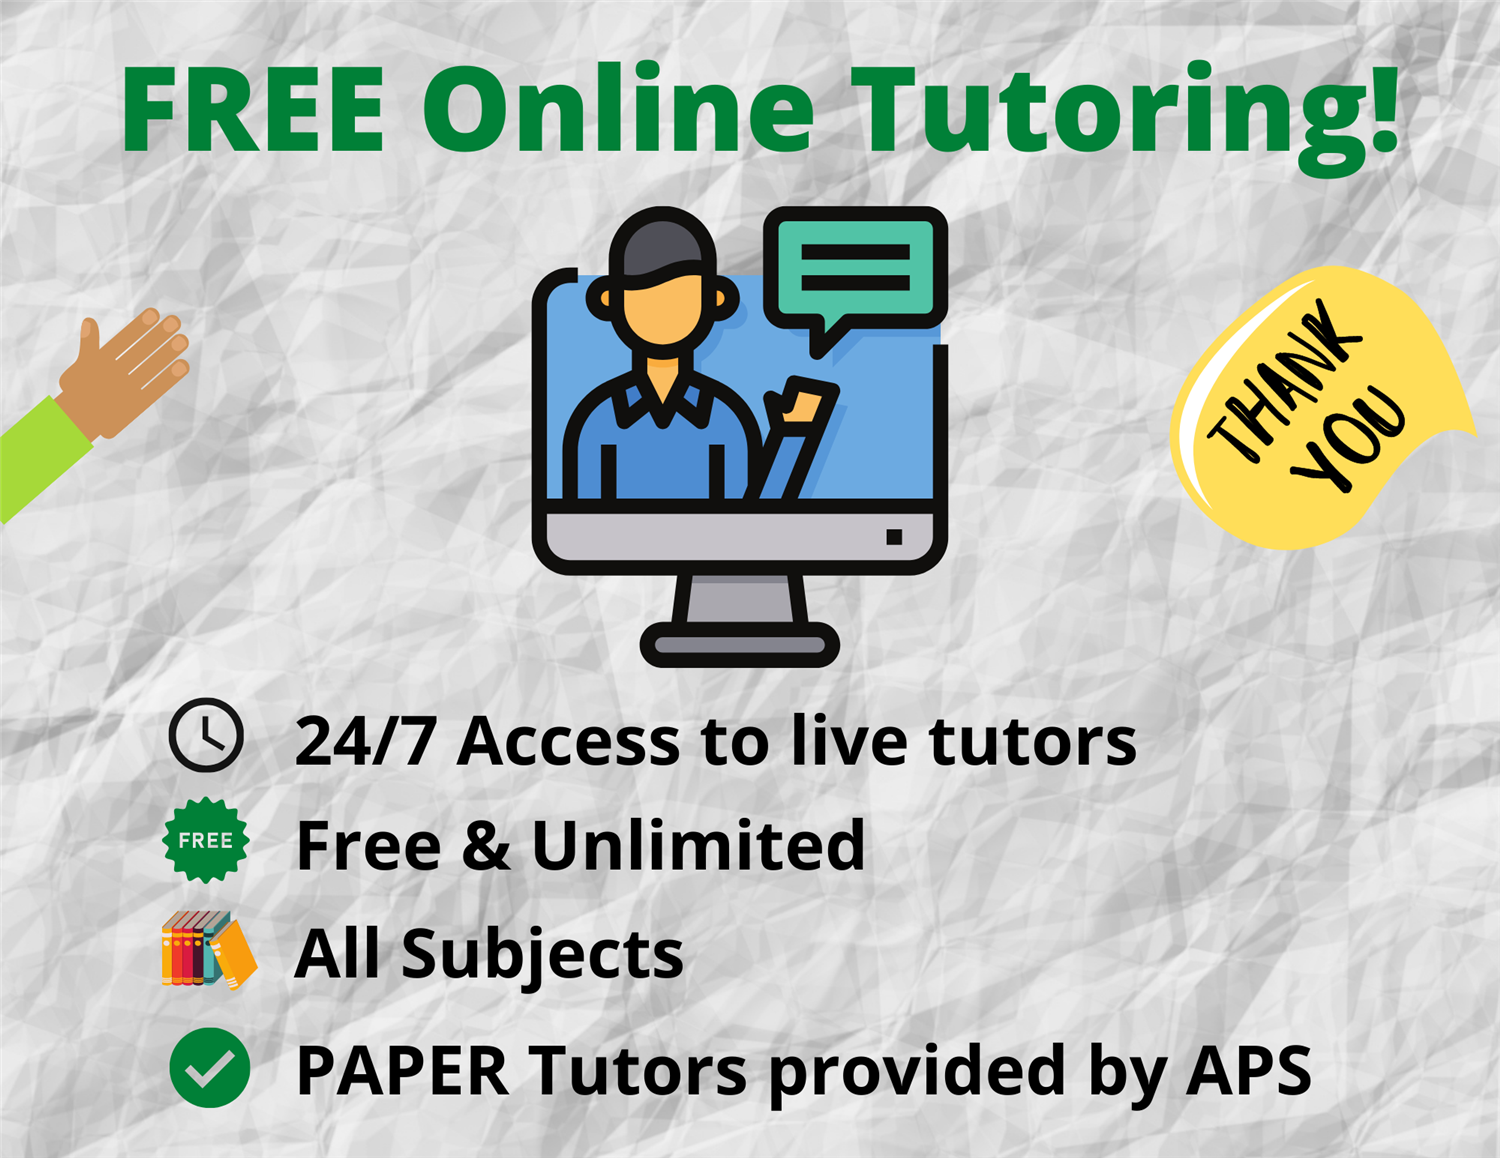 Free Online Tutoring via PAPER!